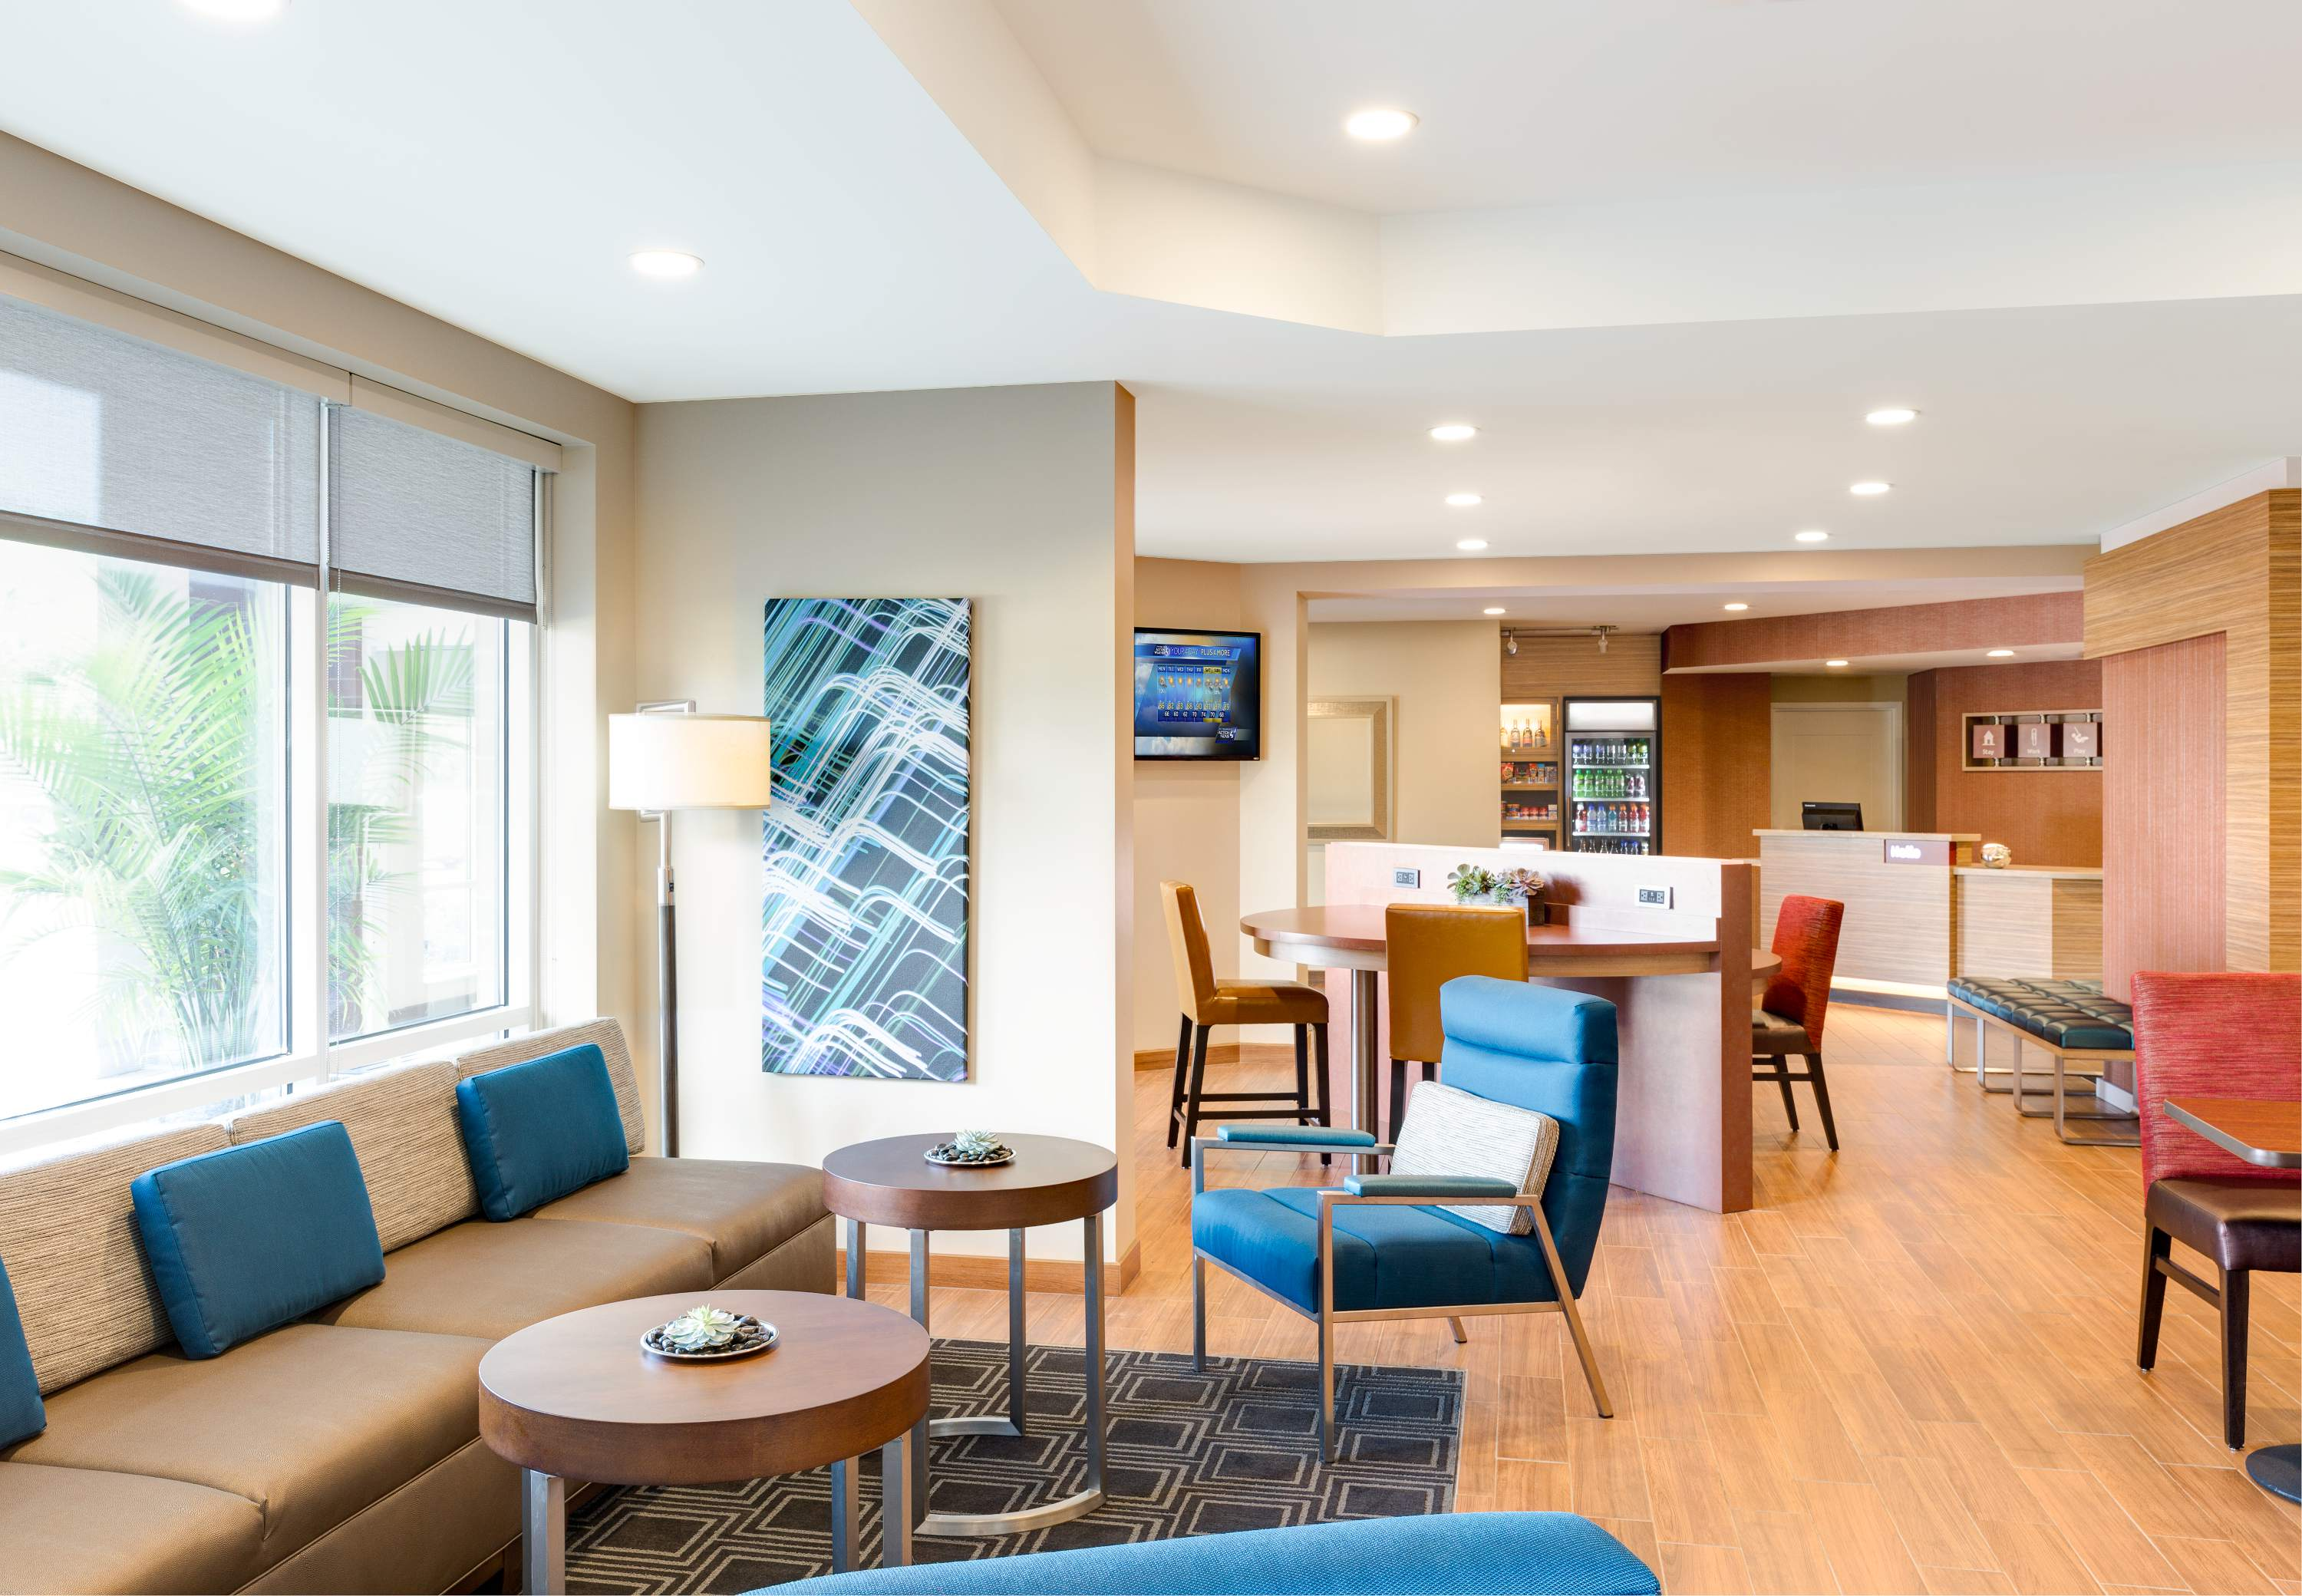 TownePlace Suites by Marriott Austin North/Lakeline image 3